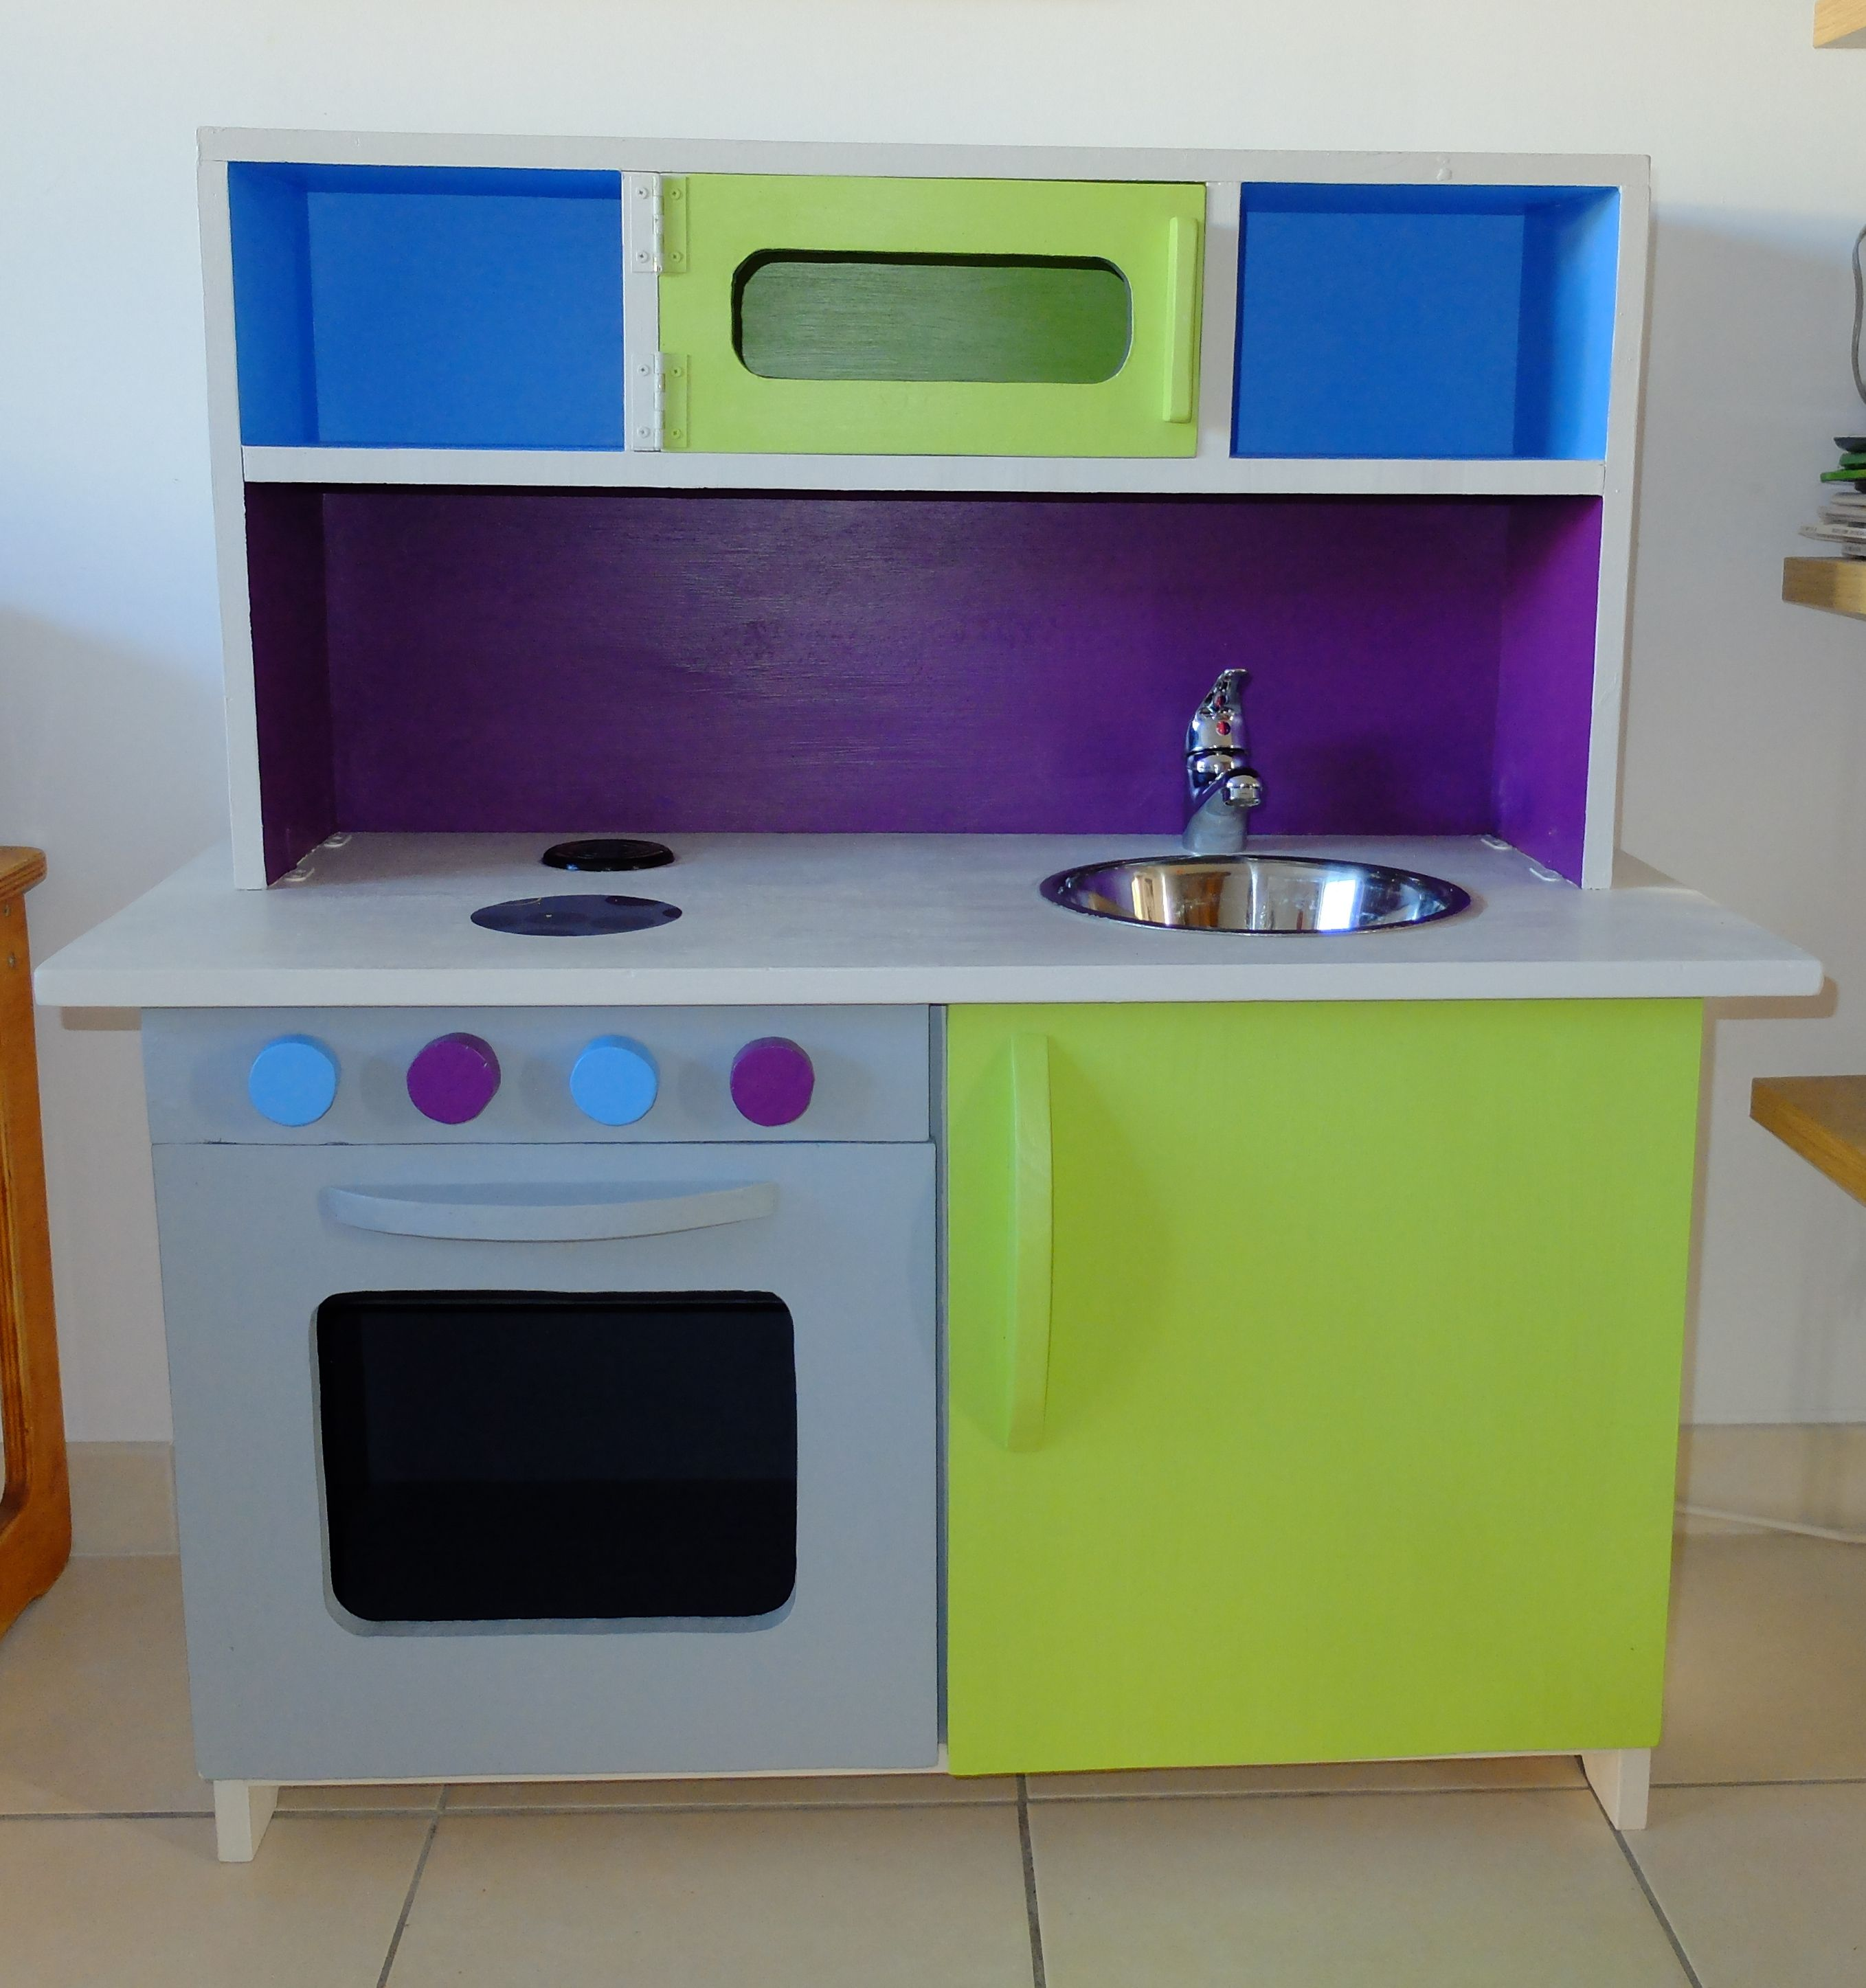 meuble cuisine pour enfants diy coin d nette pinterest meuble cuisine cuisine pour enfant. Black Bedroom Furniture Sets. Home Design Ideas